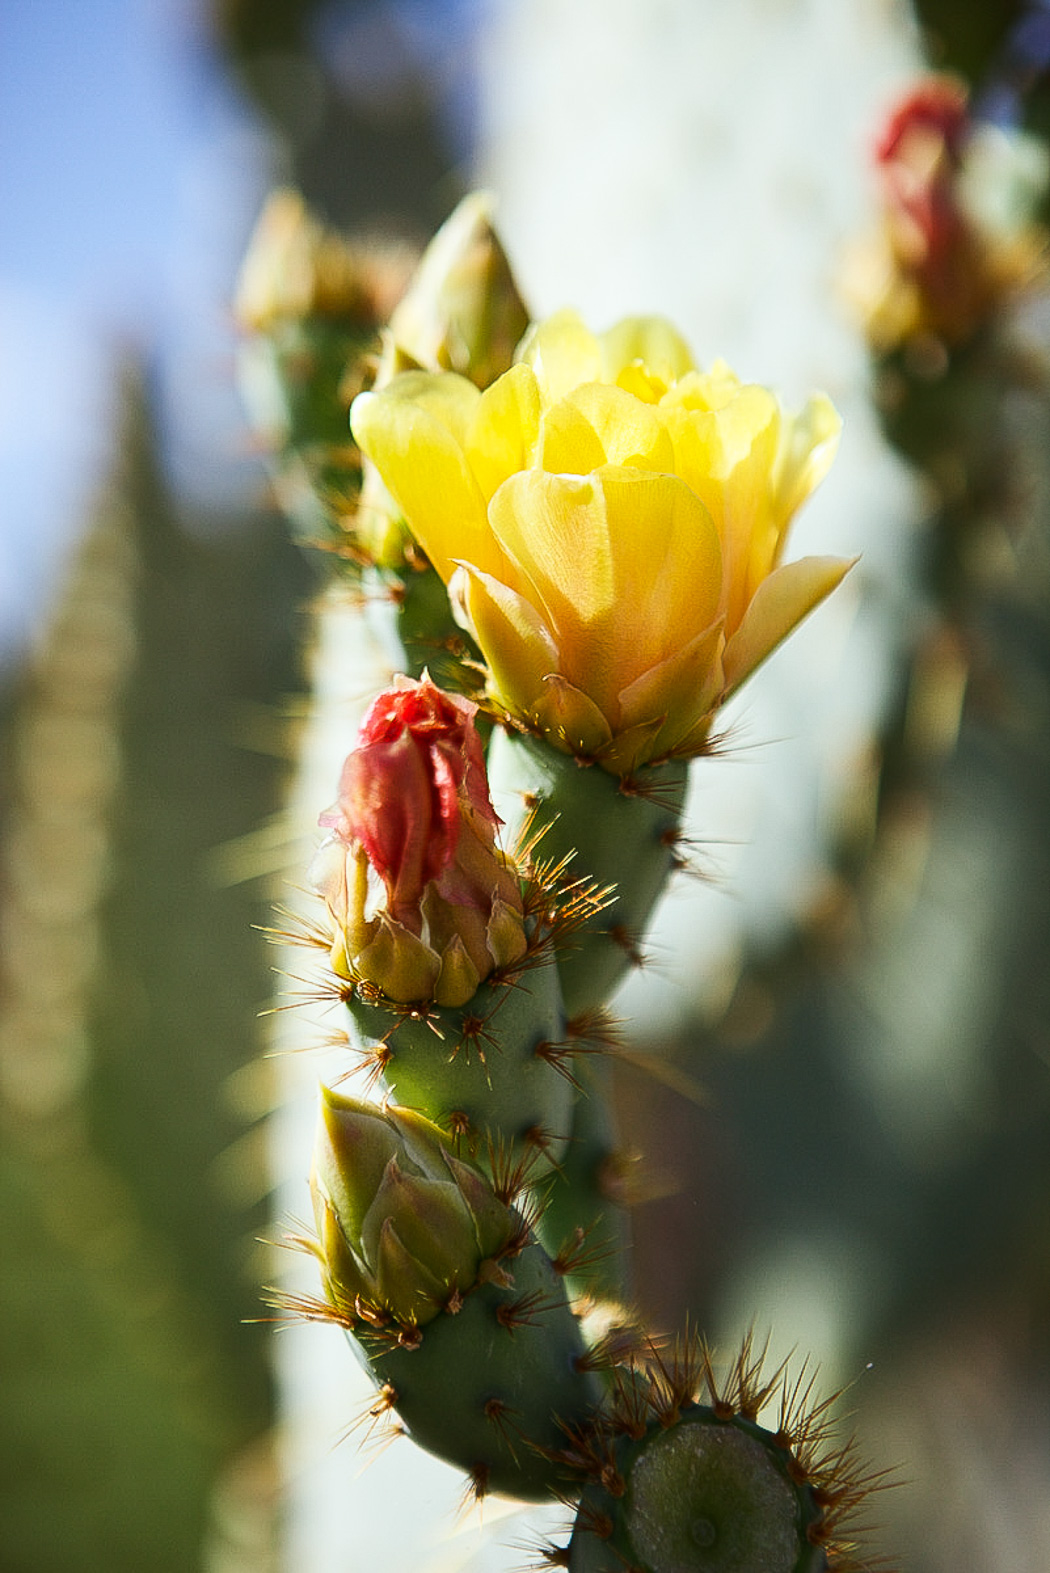 Close up shot of a cactus with flowers